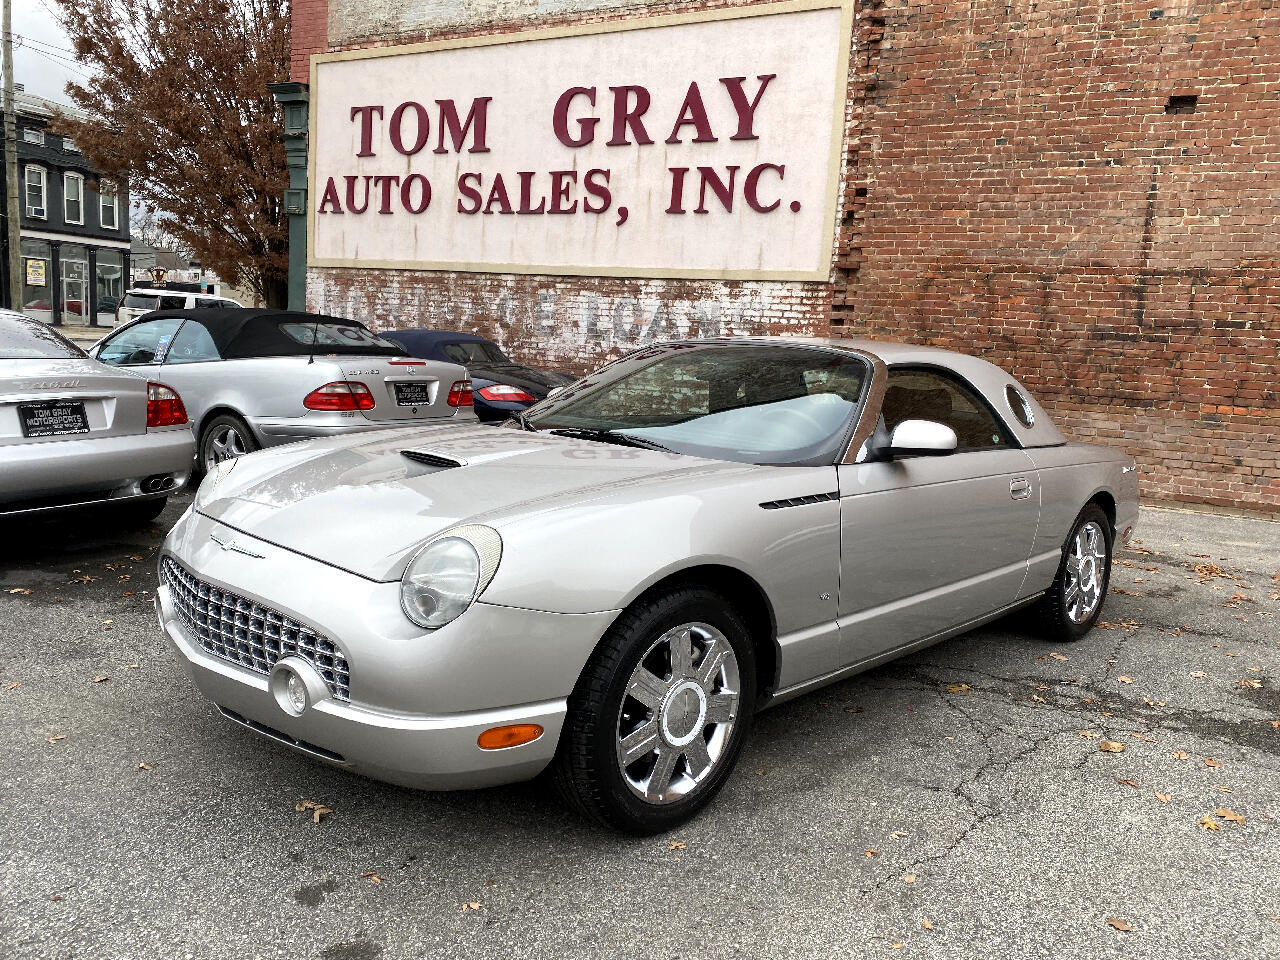 Used Cars For Sale Louisville Ky >> Used Cars For Sale Louisville Ky 40204 Tom Gray Auto Sales